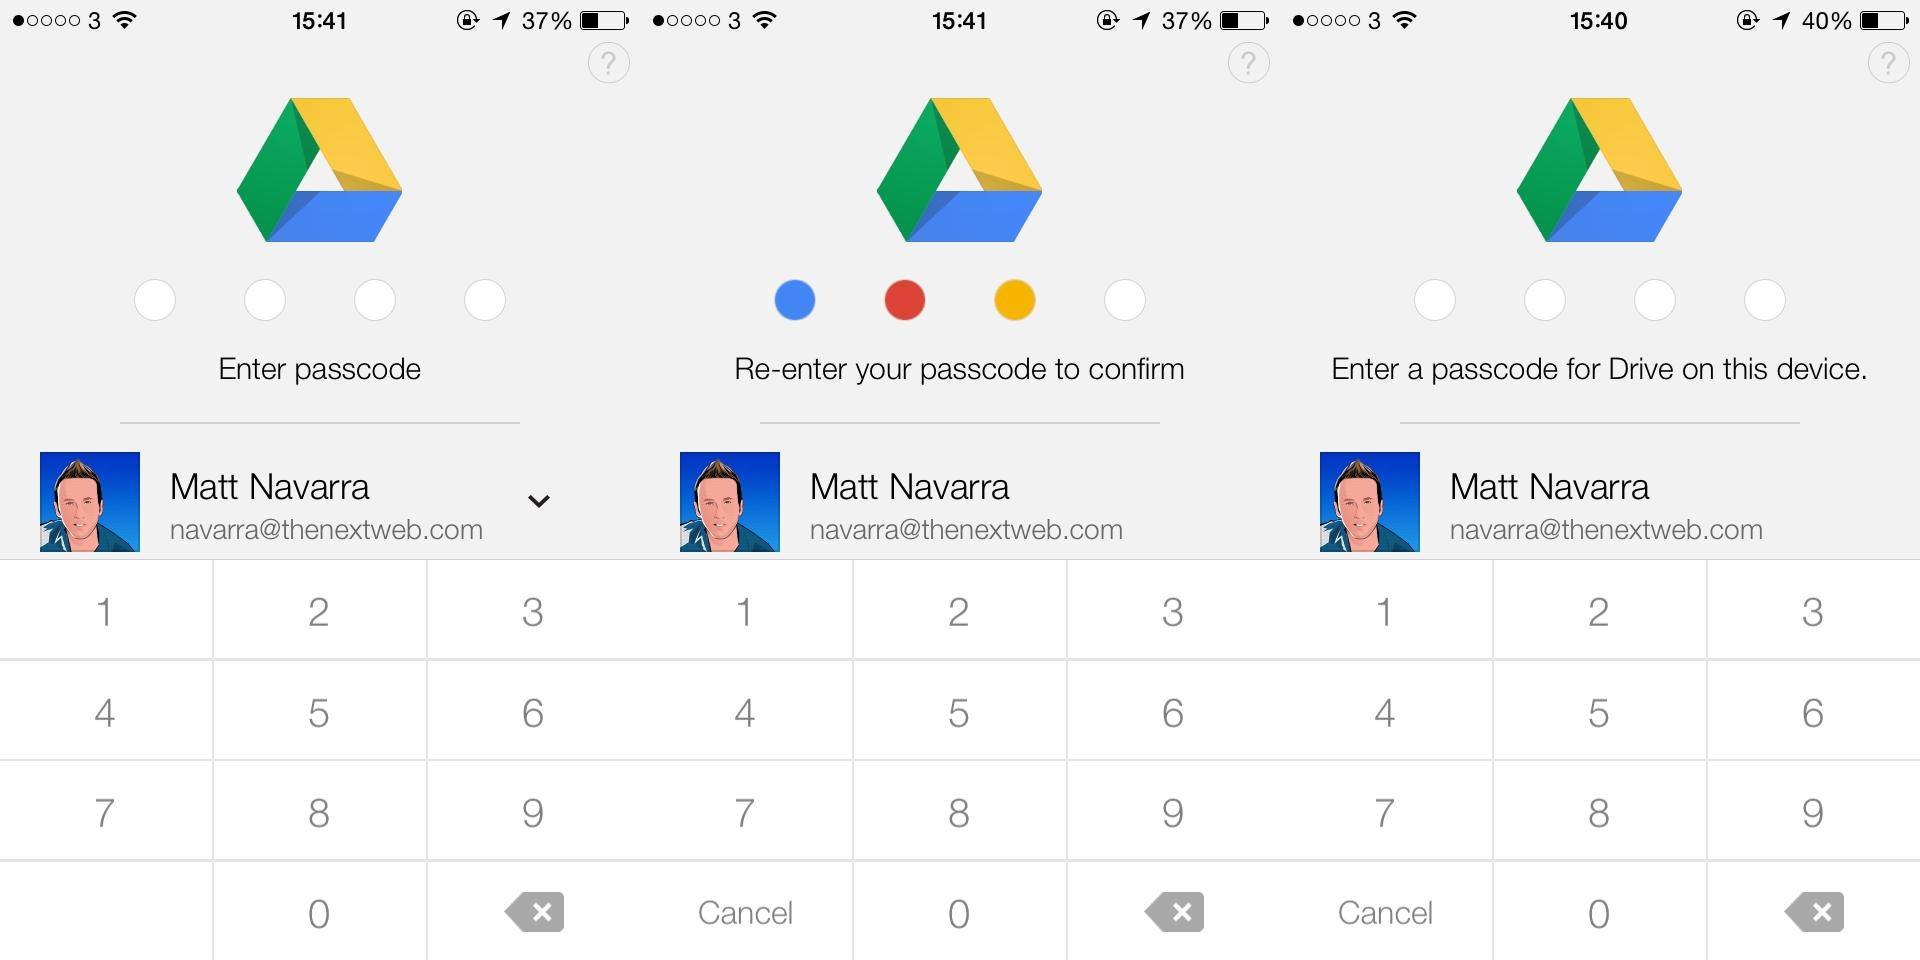 google drive ios passcode Google Drive for iOS gets a 4 digit passcode lock, but loses support for document editing